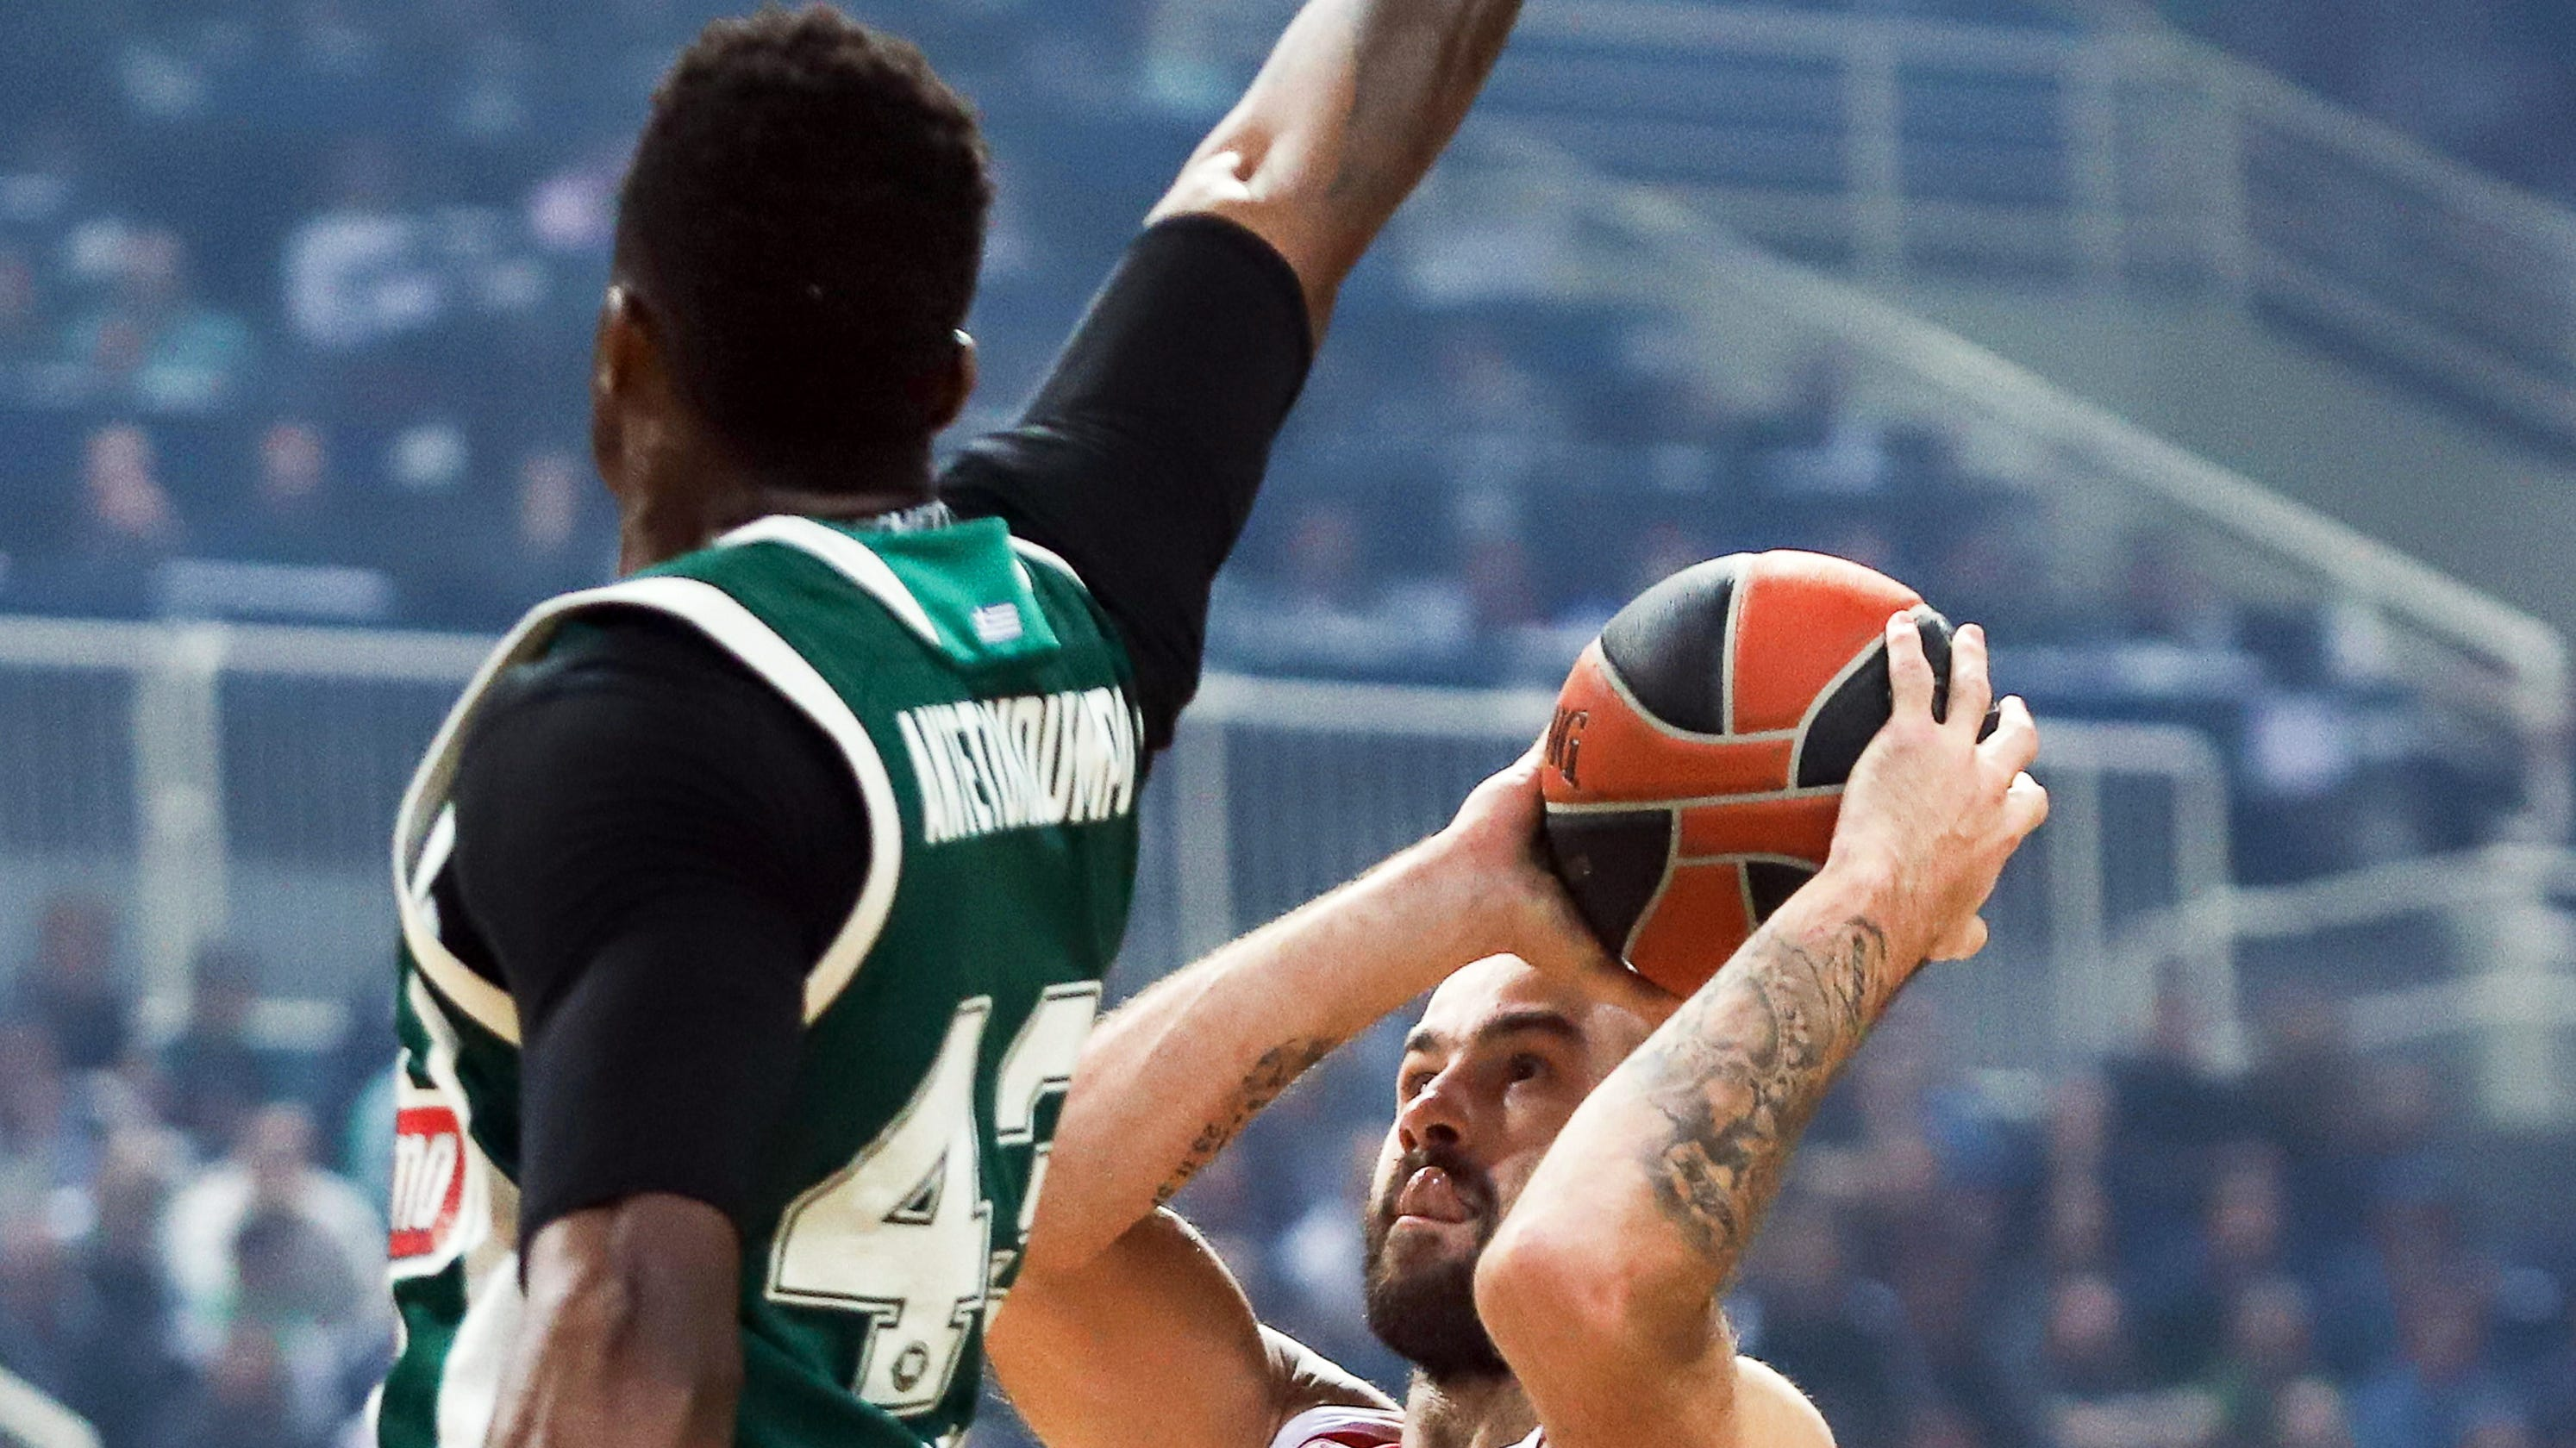 b8f51040084 How to watch Rick Pitino s coaching debut at Panathinaikos in Greece